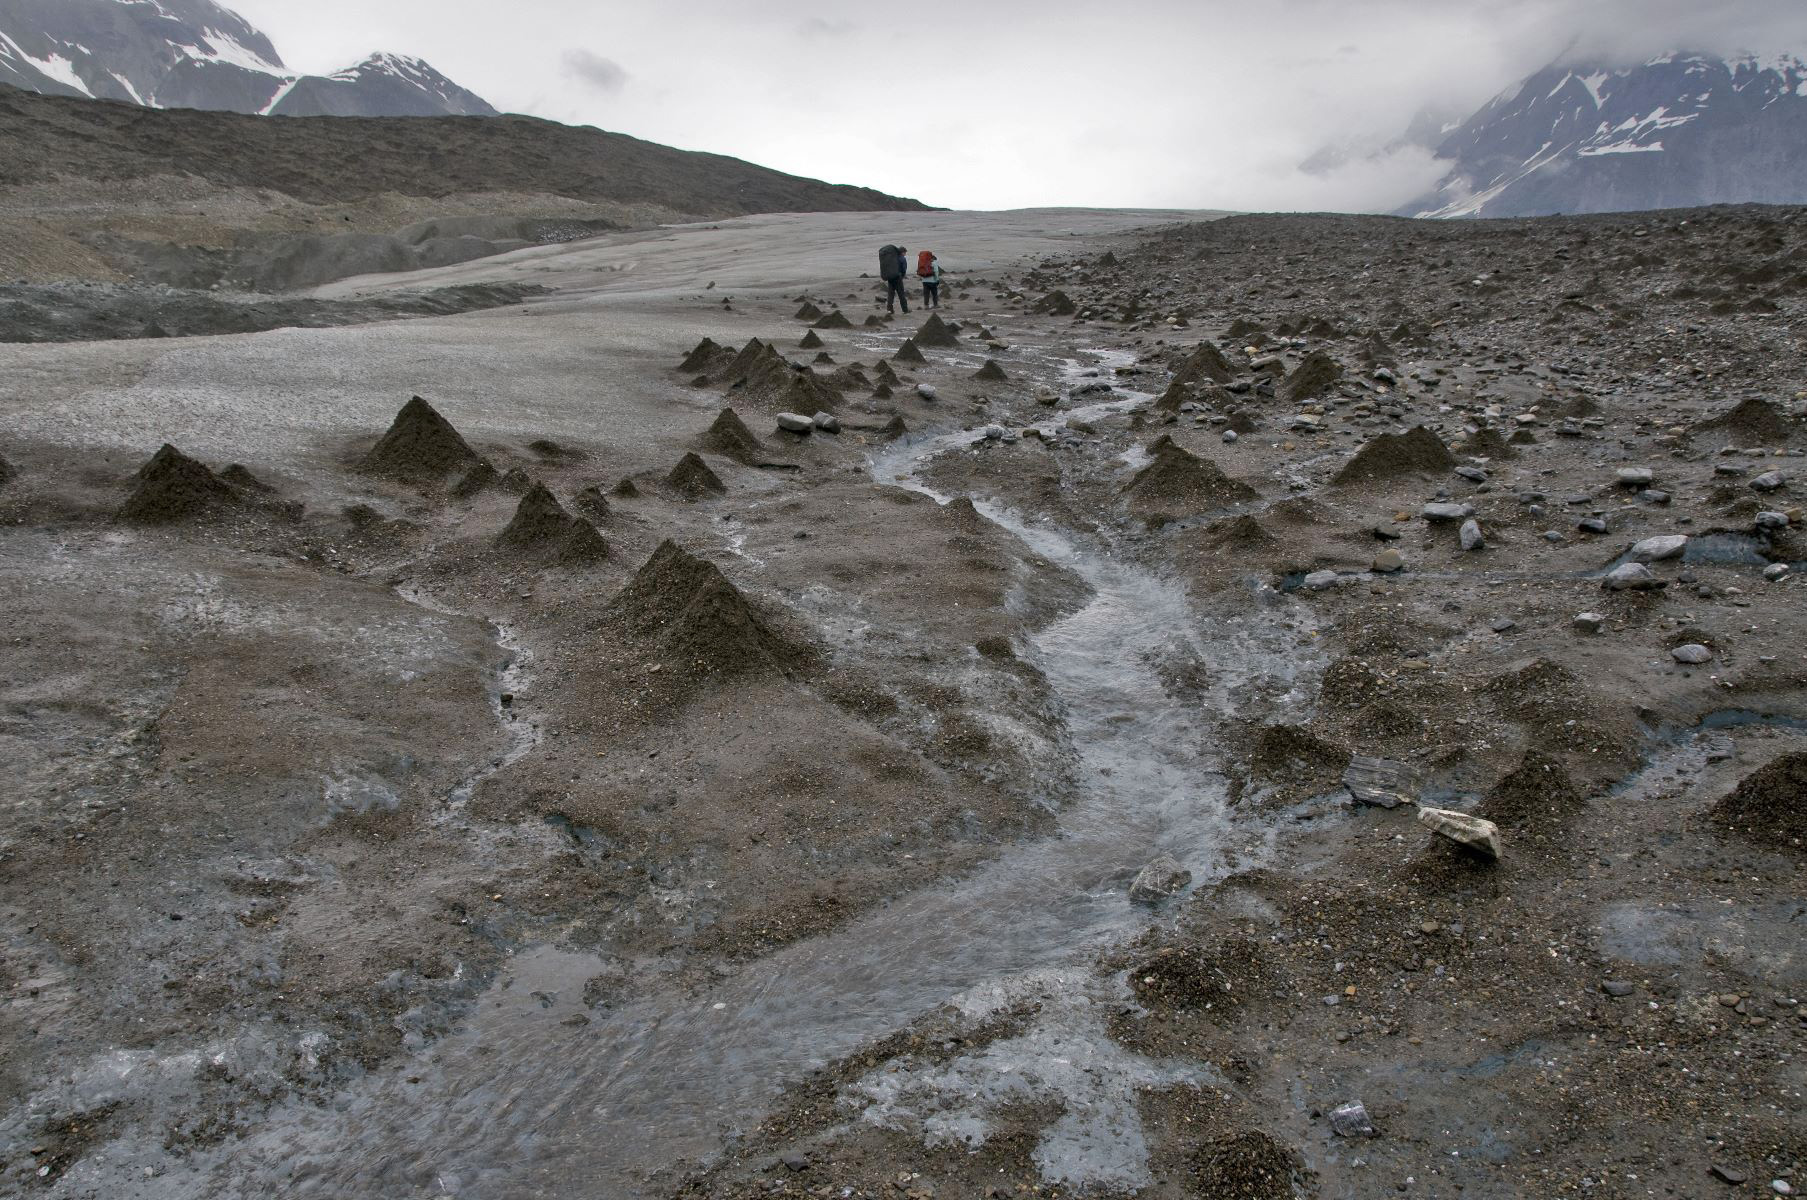 The cone shaped mounds are called glacier cones or debris cones.  They are mostly ice with a thin veneer of gravel and sand over a cone of ice.